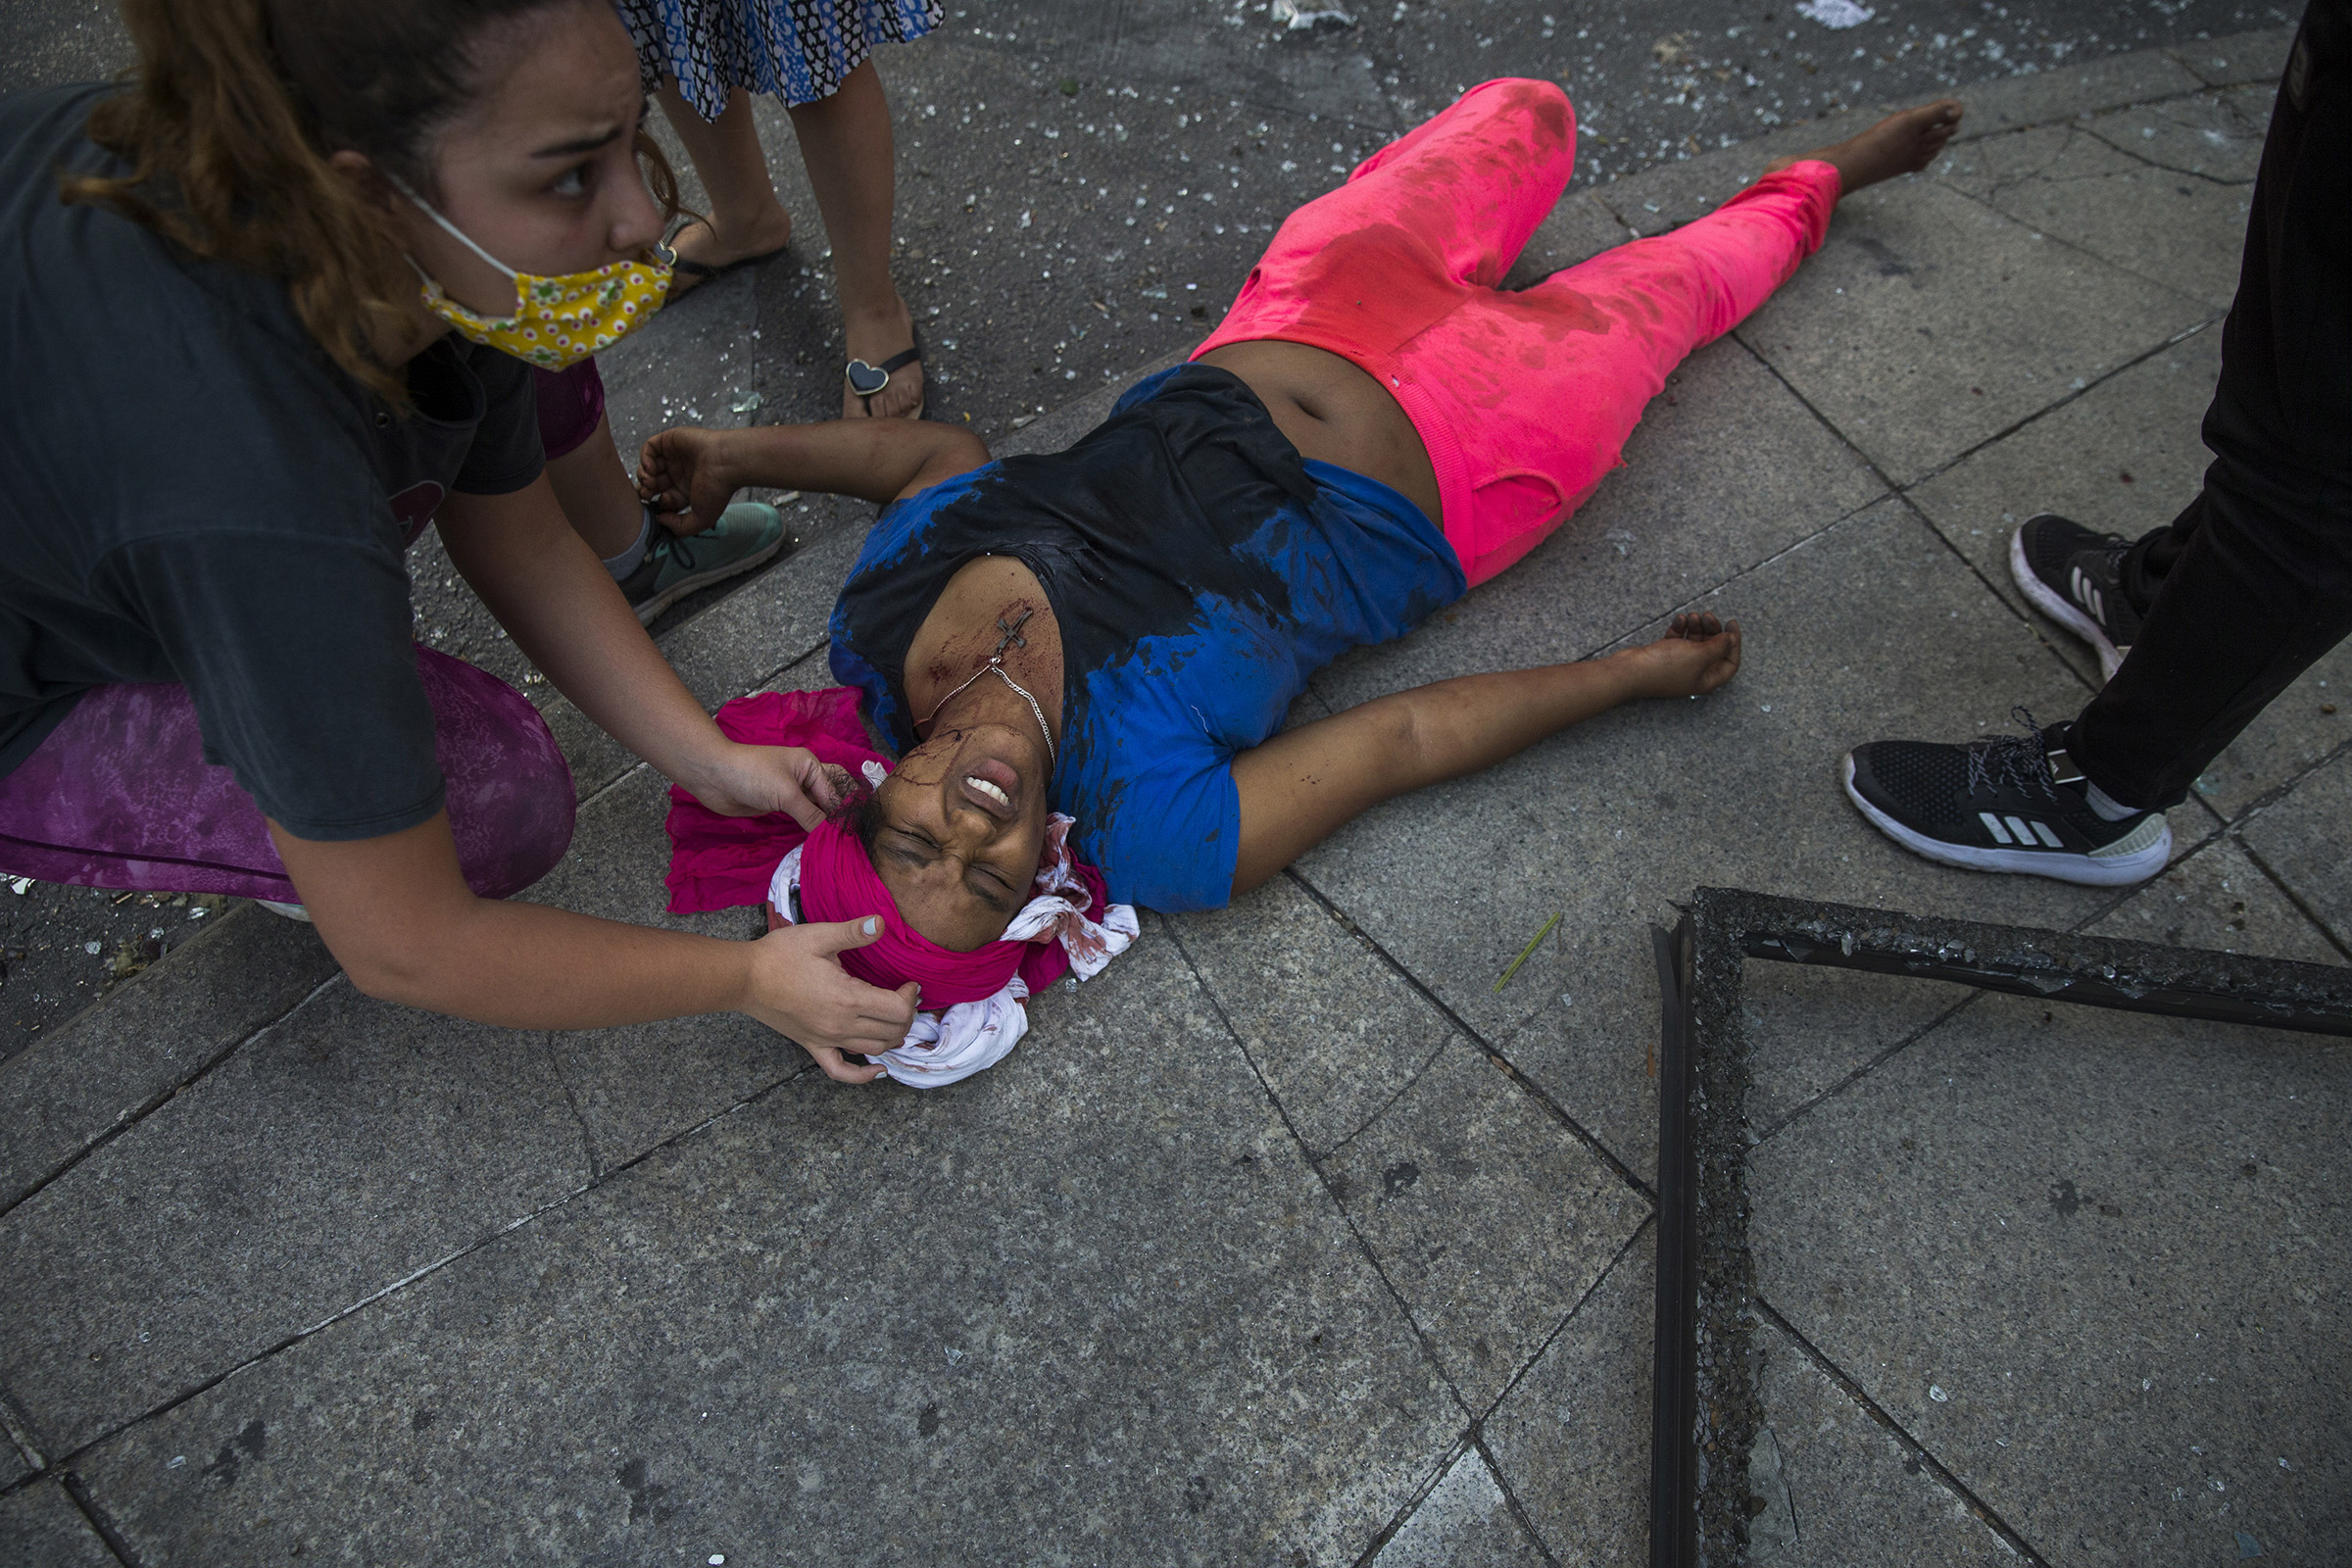 An injured woman lies on the sidewalk aided by bystanders after the explosion.